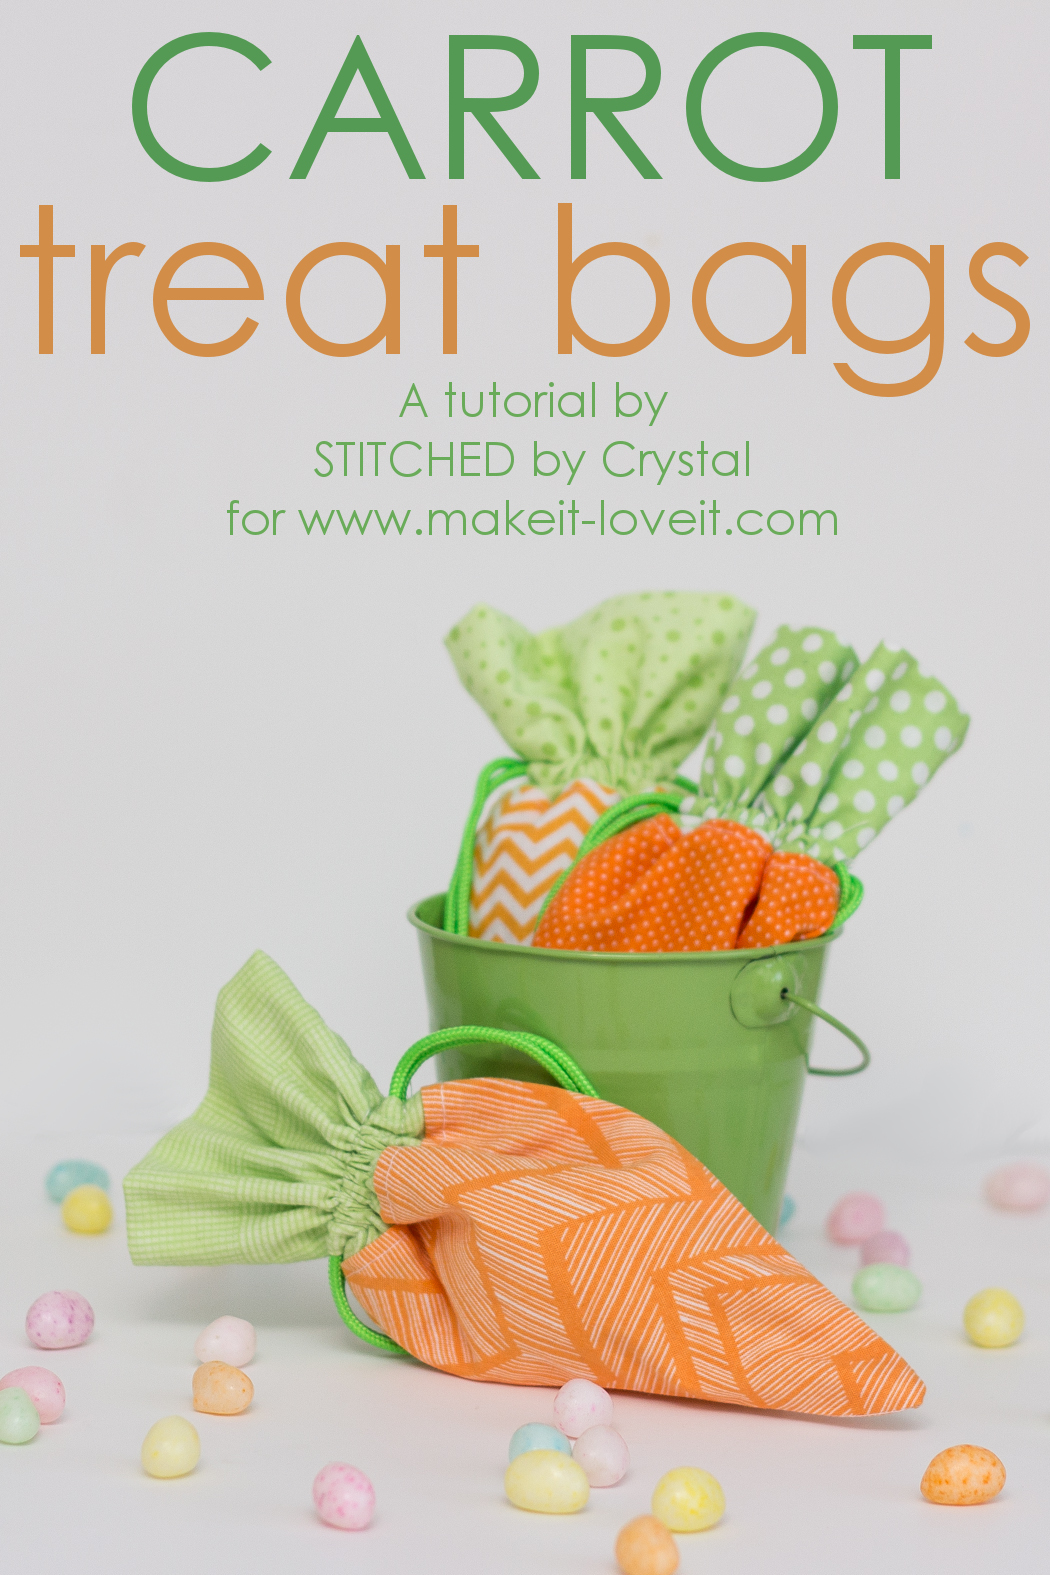 carrot-treat-bag-tutorial.jpg